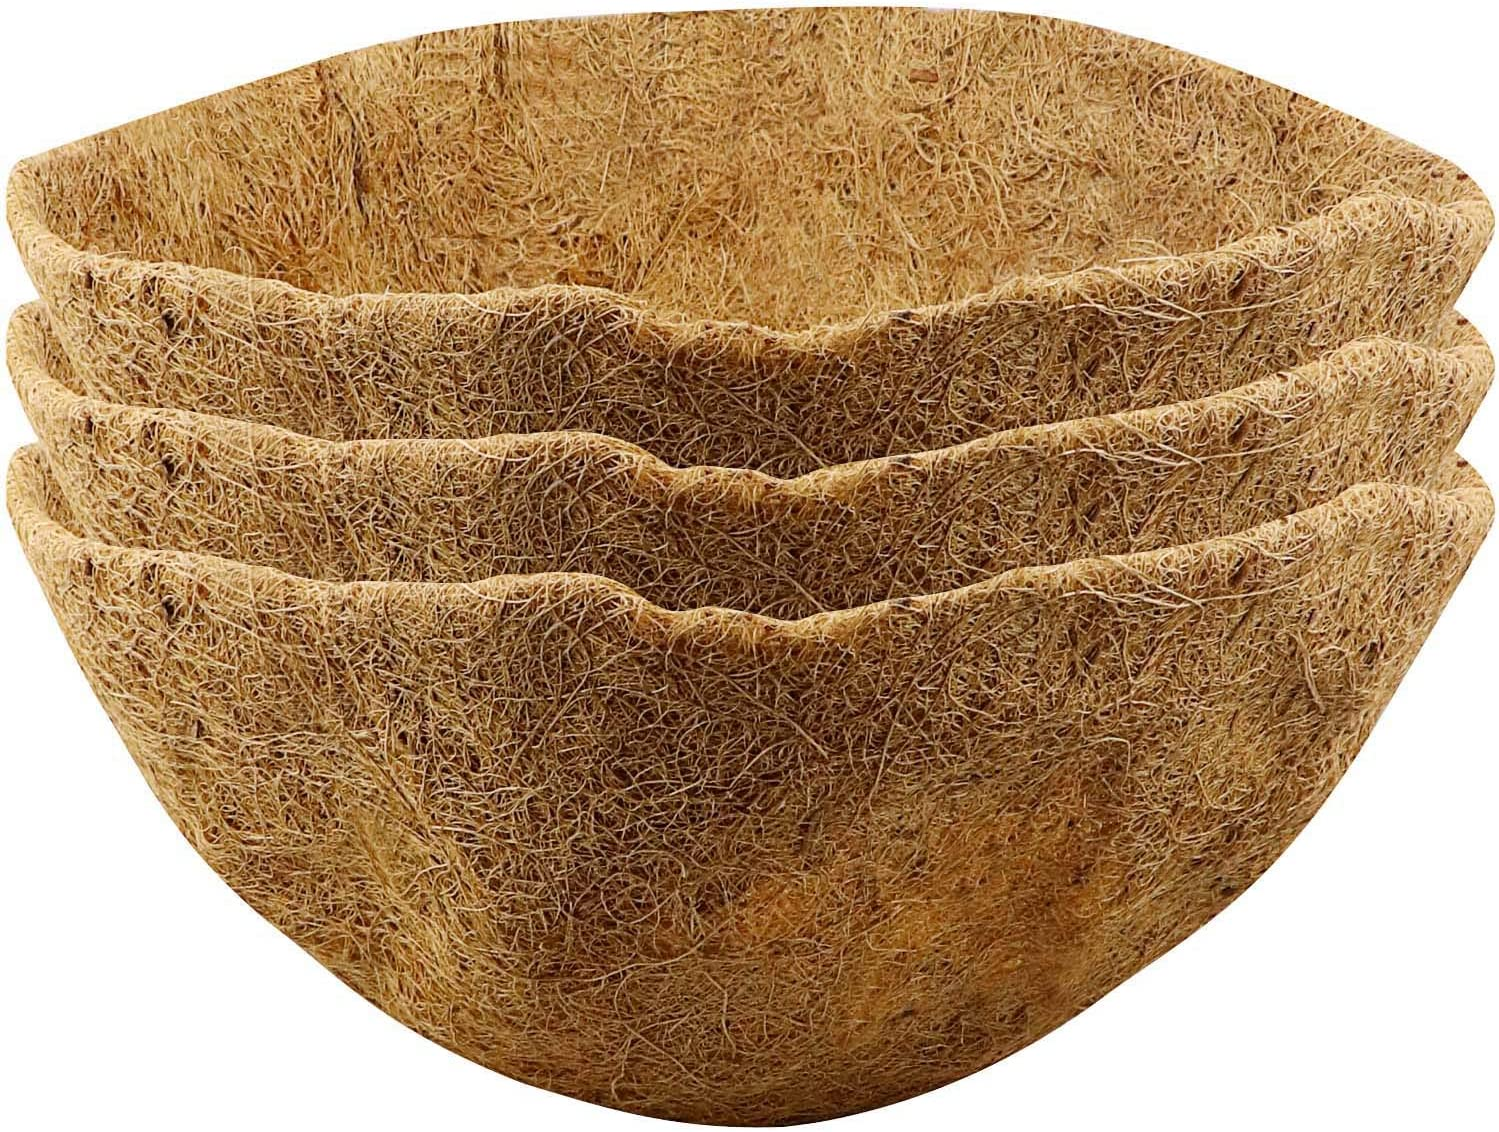 HiGift 3 Pack 14 inch Coco Liner, Replacement Coir Liner for Hanging Basket, Round Plant Basket Liners with Natural Coconut Fiber for Garden Hanging Basket and Planter Flower Pot